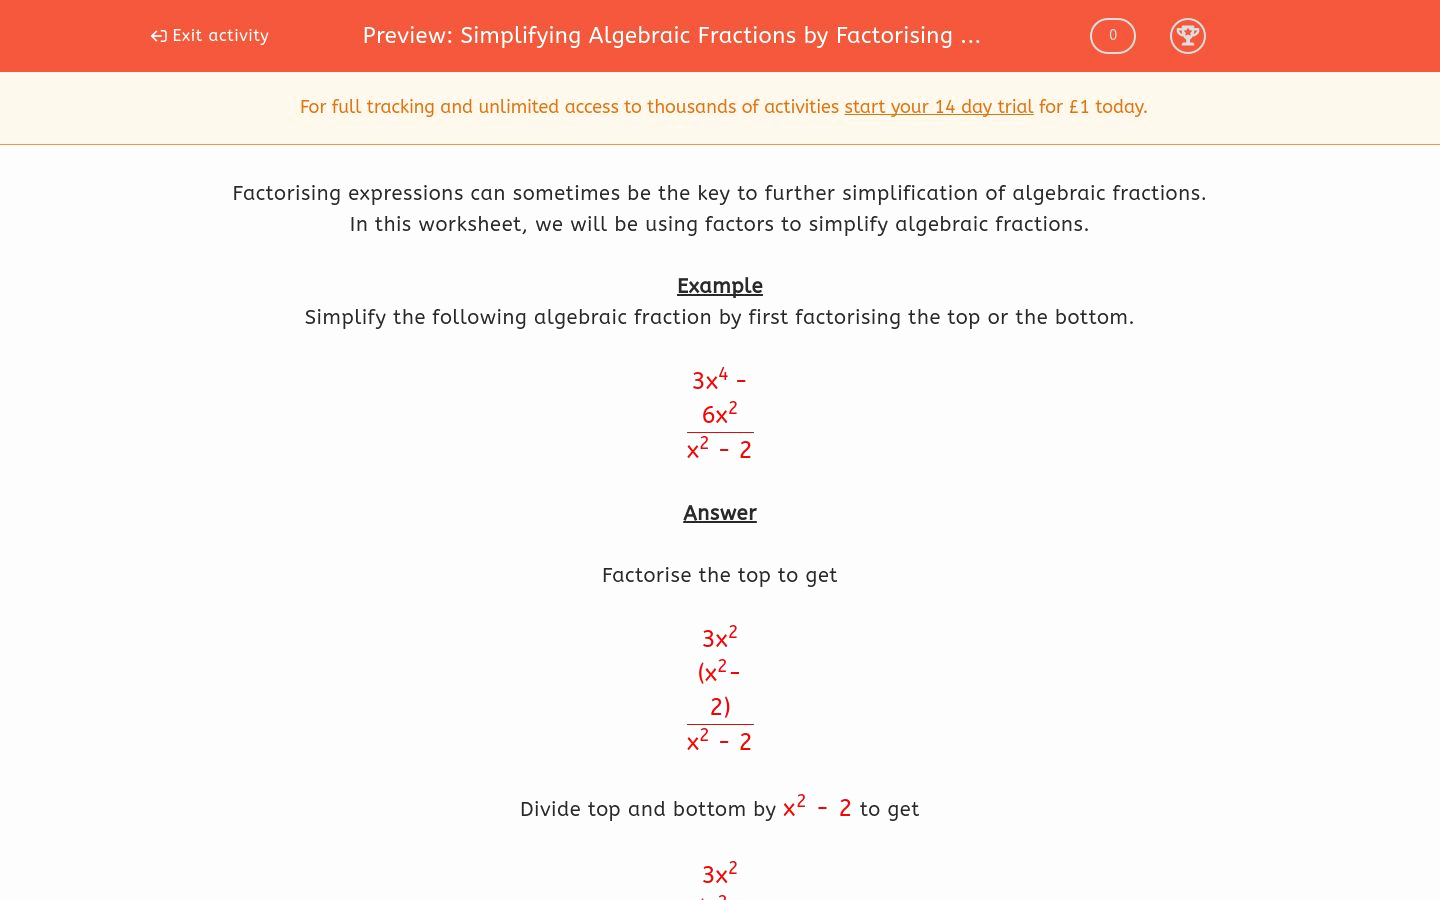 Simplifying Algebraic Fractions Worksheet Luxury Simplifying Algebraic Fractions by Factorising 1